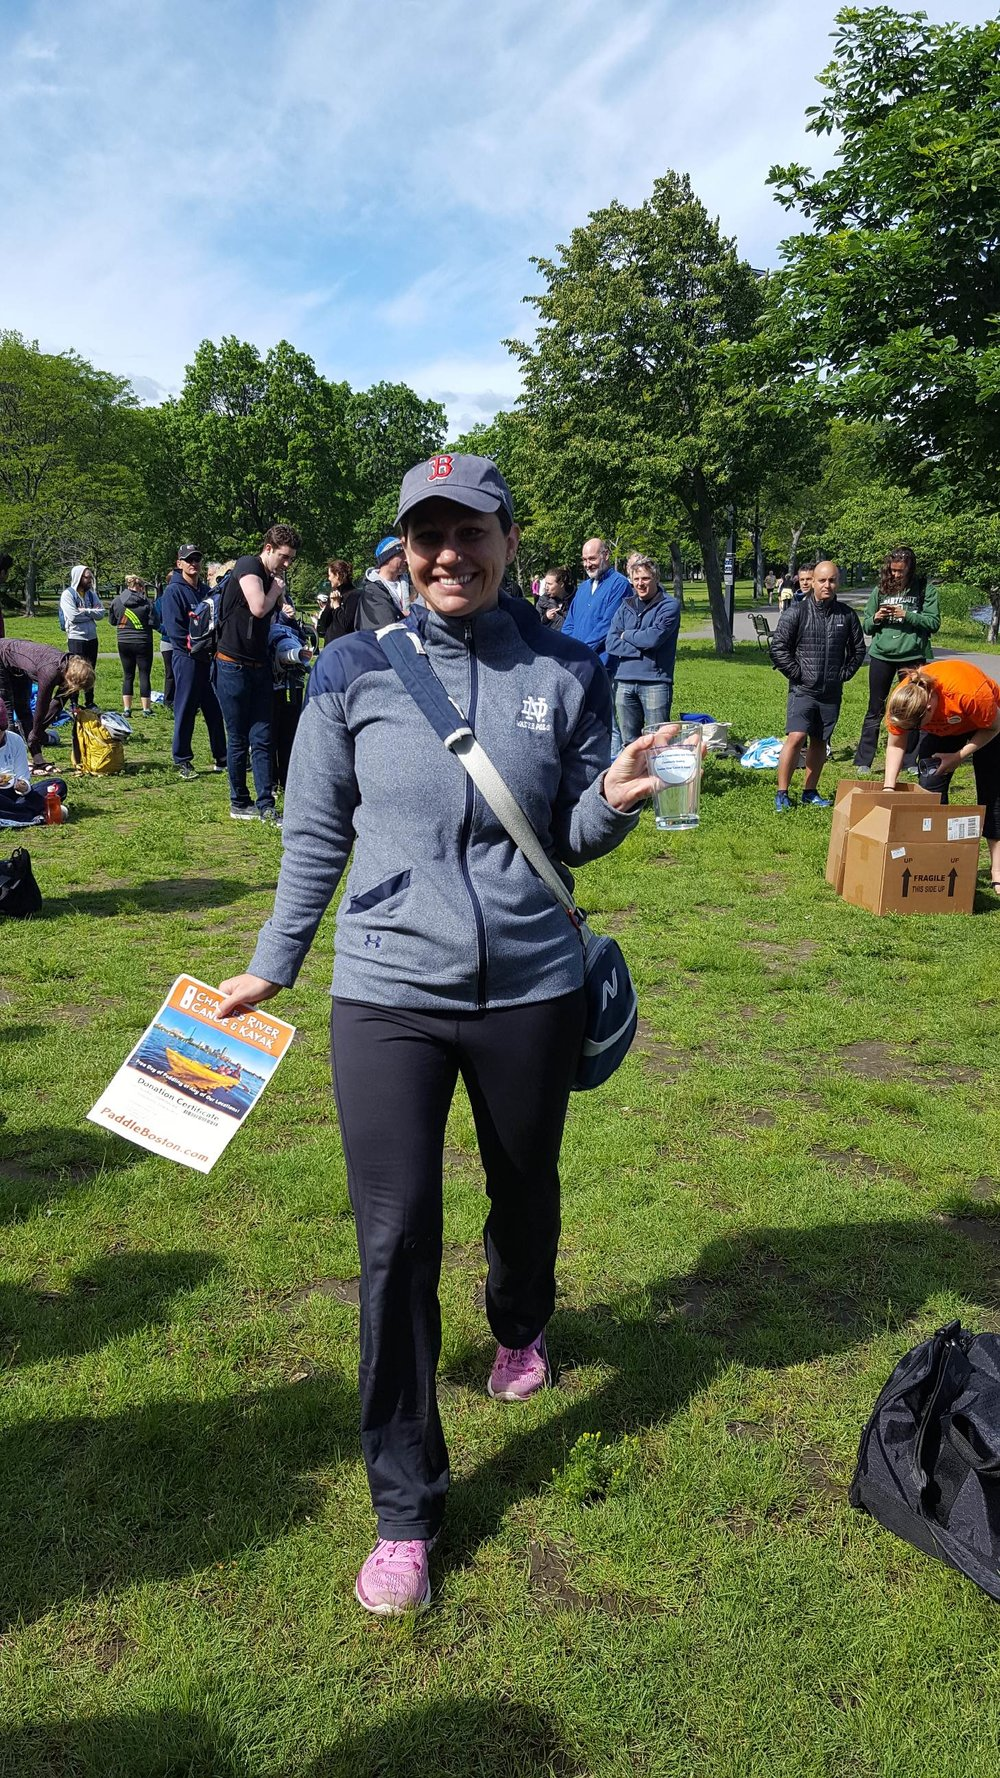 Award winners received an 'I Swam the Charles' pint glass and a day of kayaking, SUPing, or canoeing on the Charles, courtesy of Charles River Canoe and Kayak